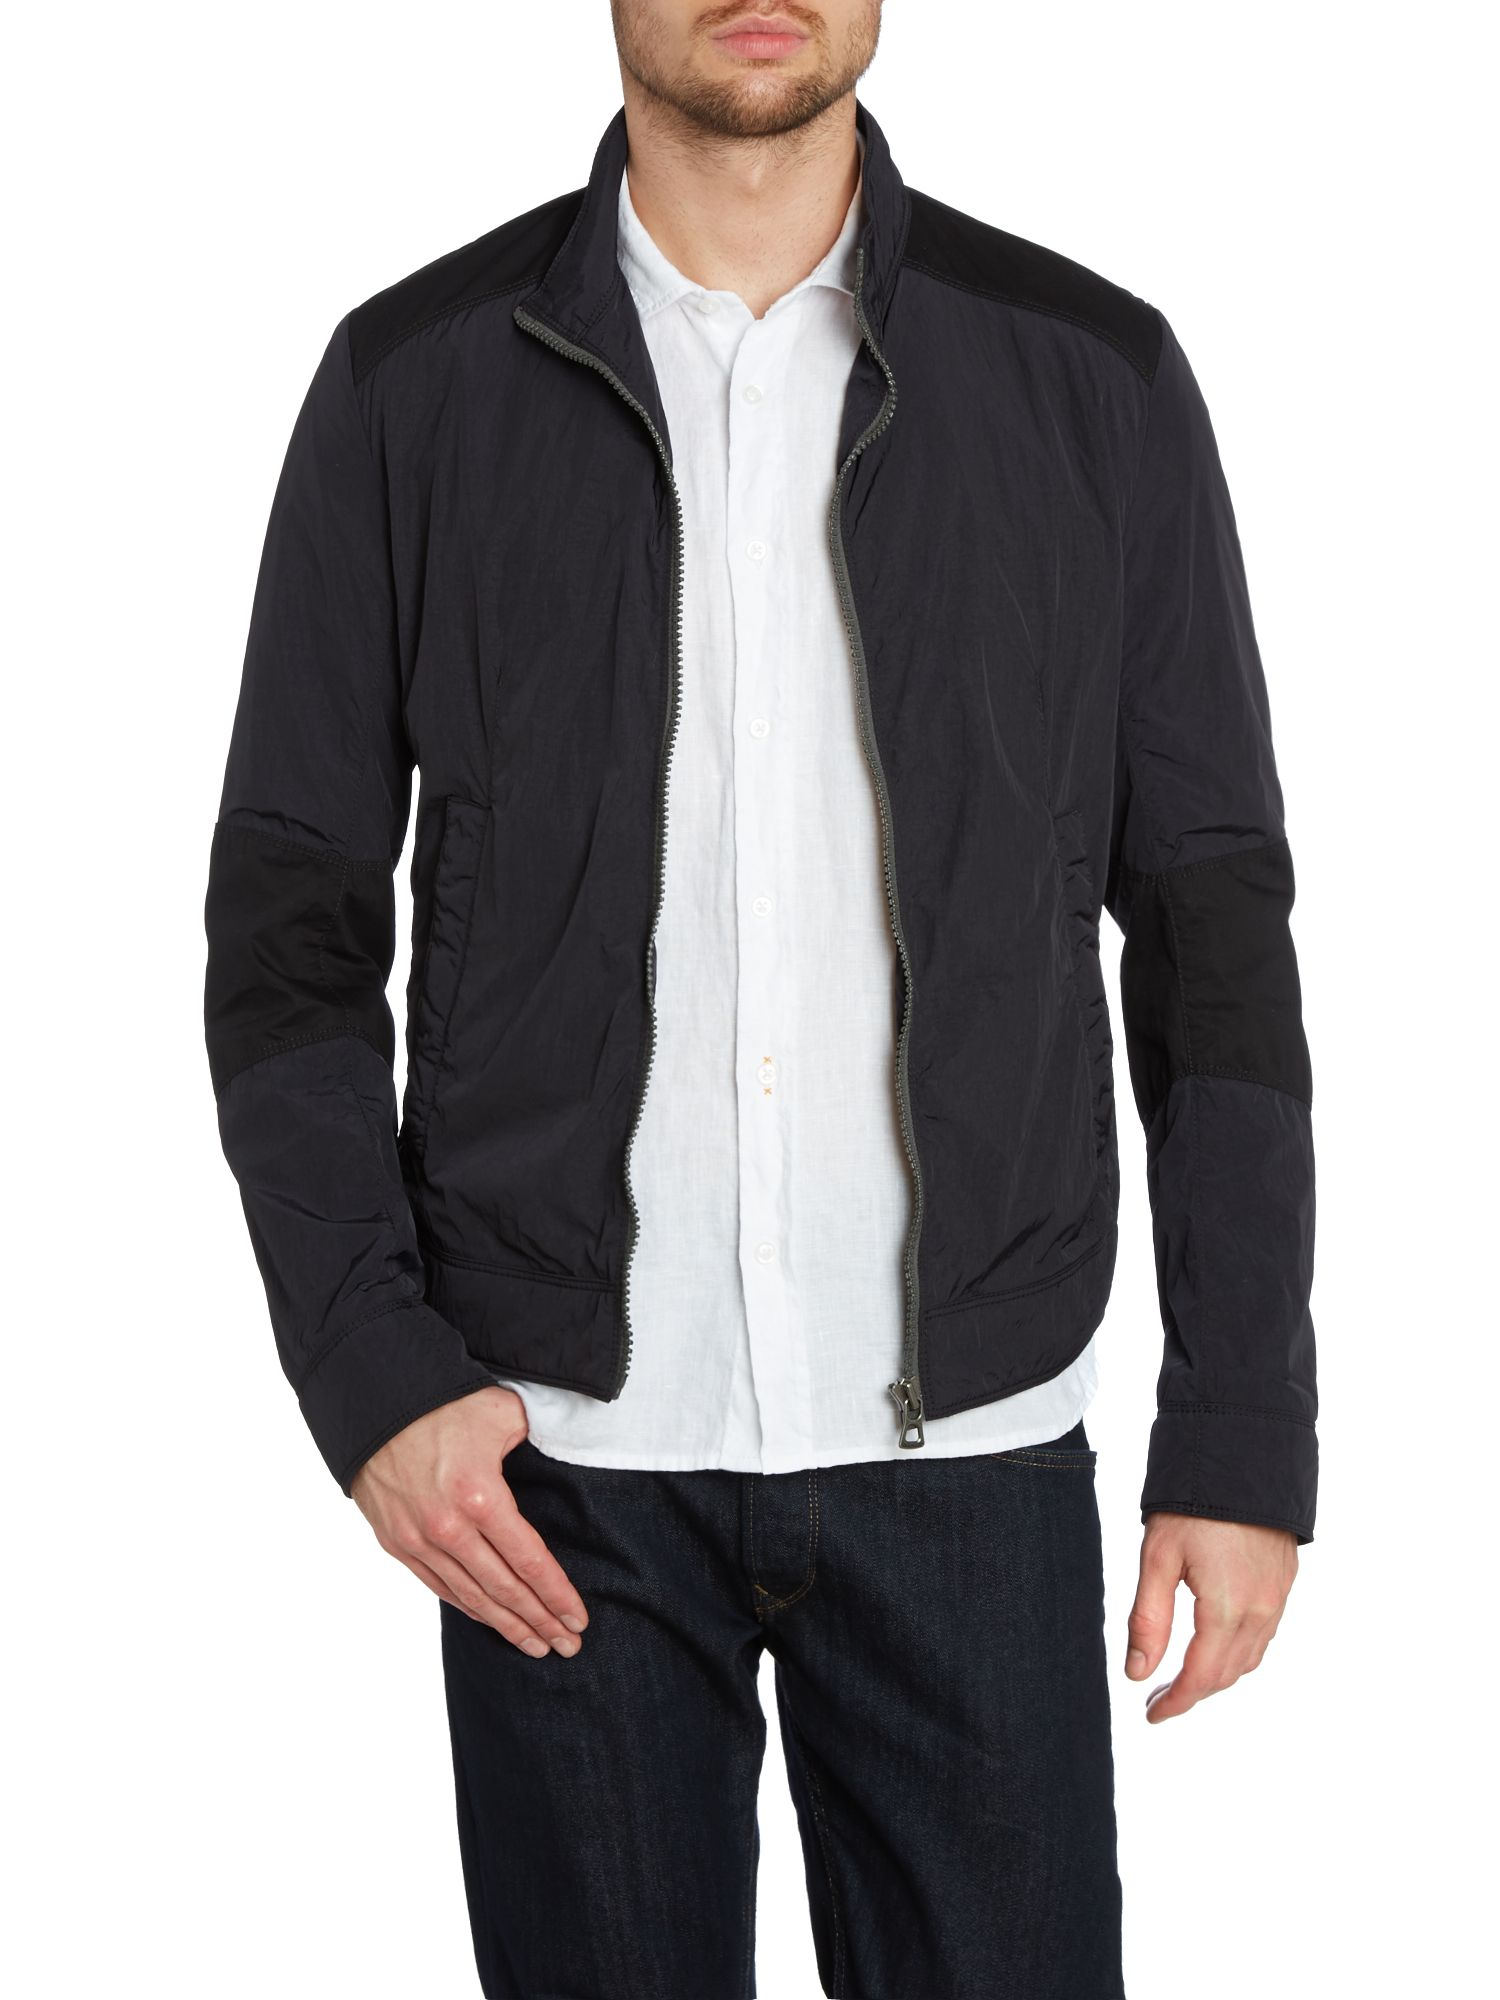 Nylon zip up jacket